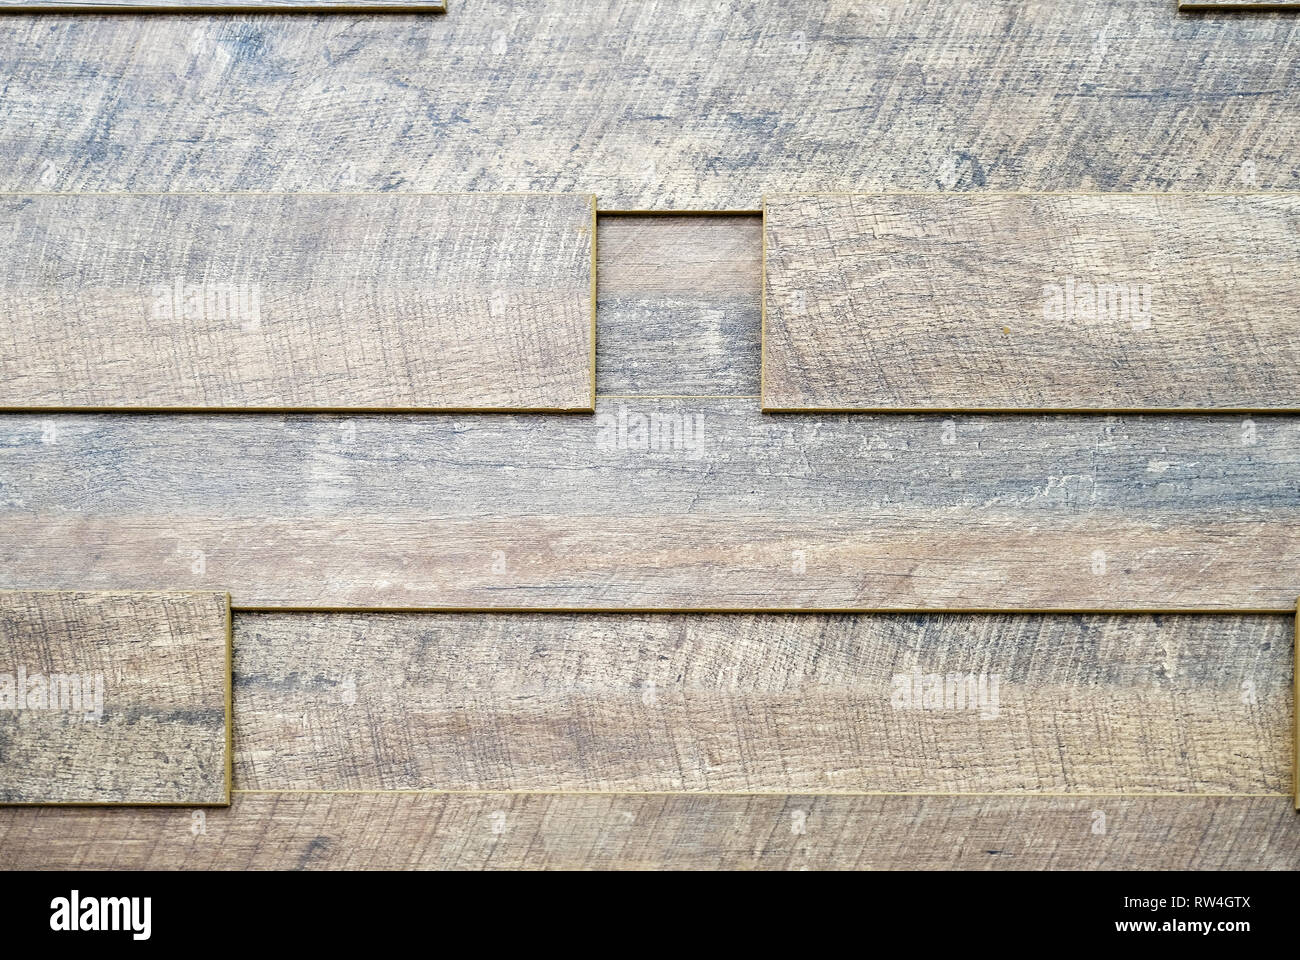 Warehouse production and woodworking. Medium density fiberboard typesetting. Selective focus - Stock Image